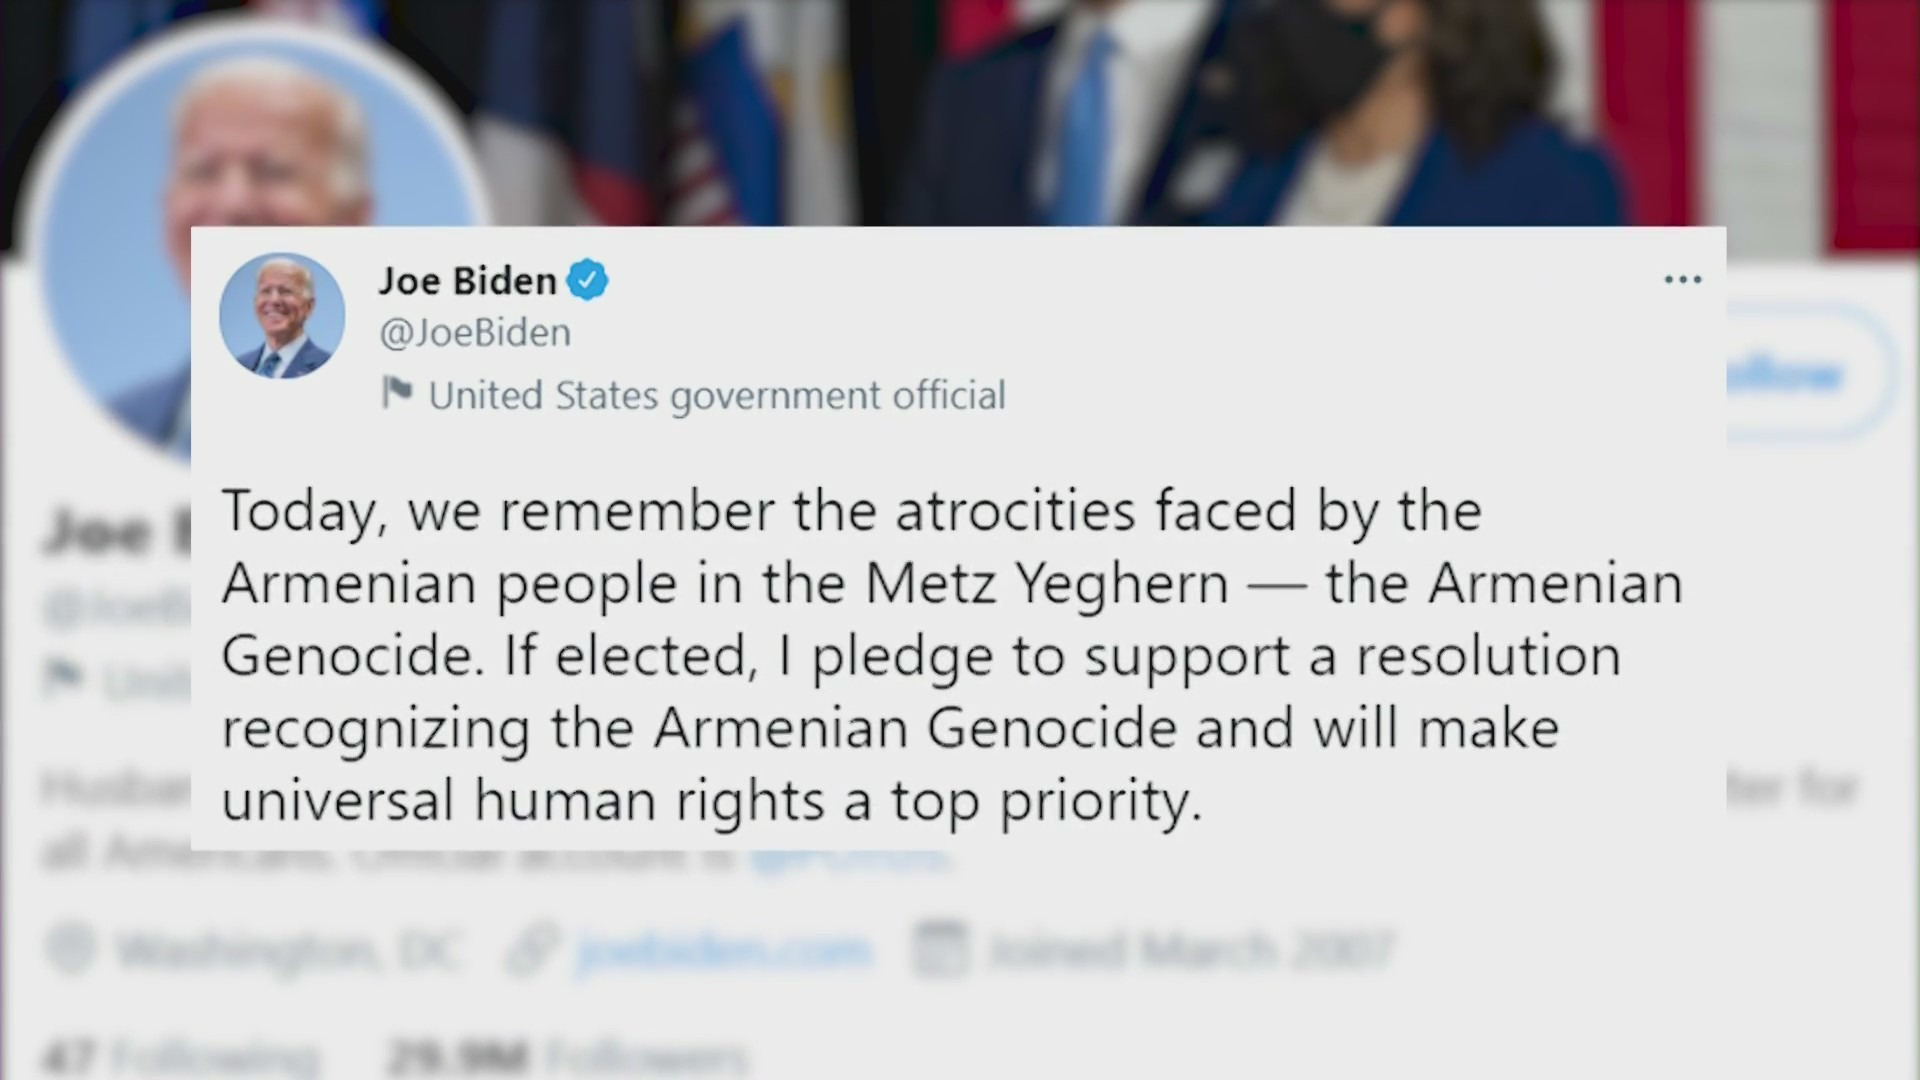 Joe Biden tweeted his pledge to recognize the Armenian genocide while campaigning for president in 2020.